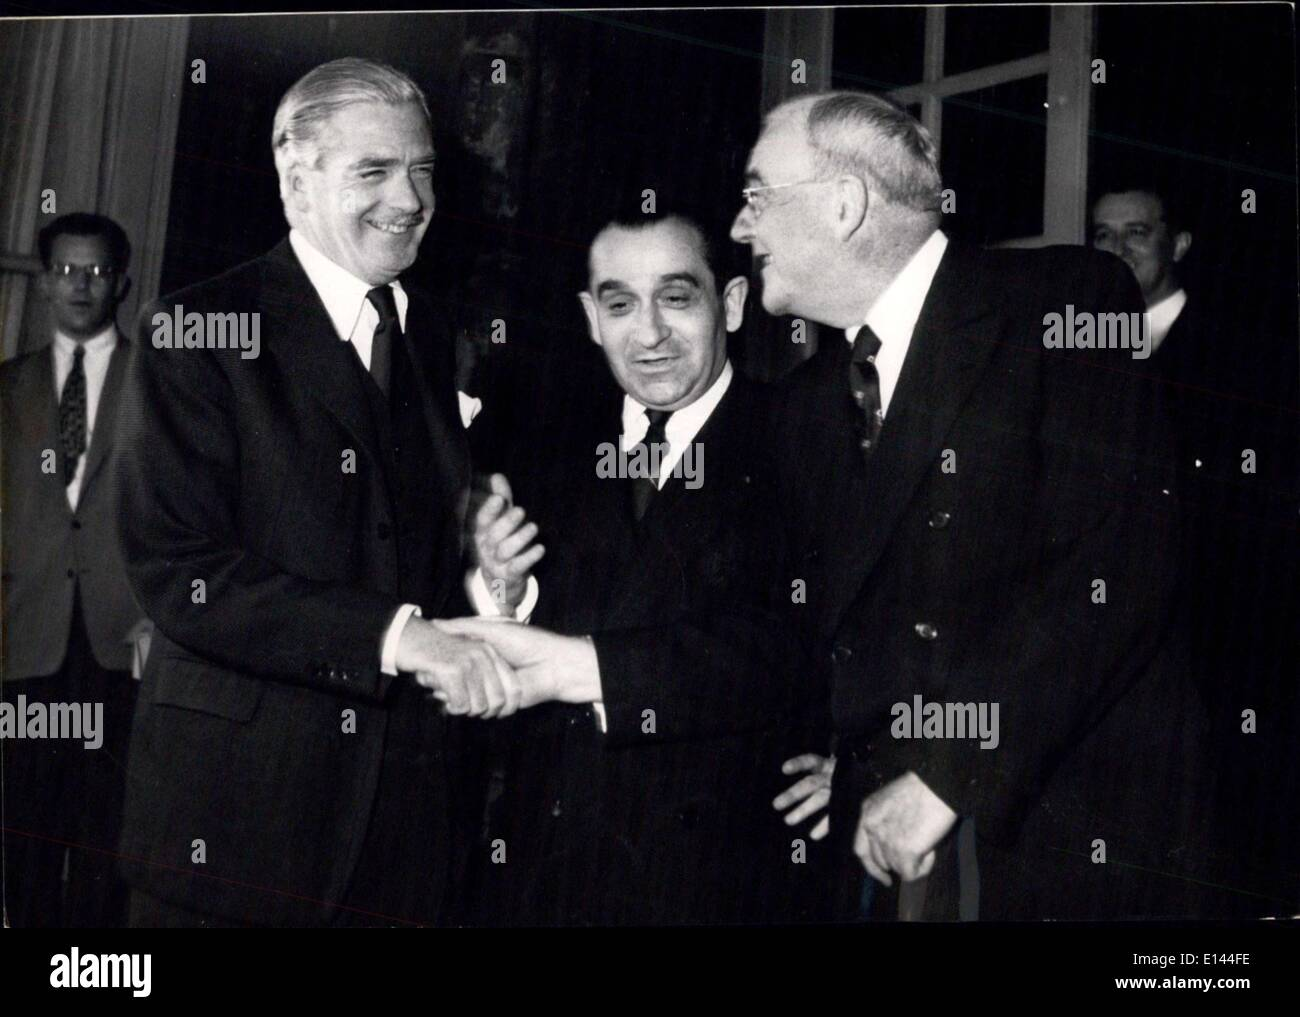 Apr. 04, 2012 - Mendes France Rushes back form Geneva to meet Dulies and Anthony Eden: M. Mendes Frabce photographed with Mr. Foster Dulies and Mr. Anthony Eden in Paris tonight. - Stock Image